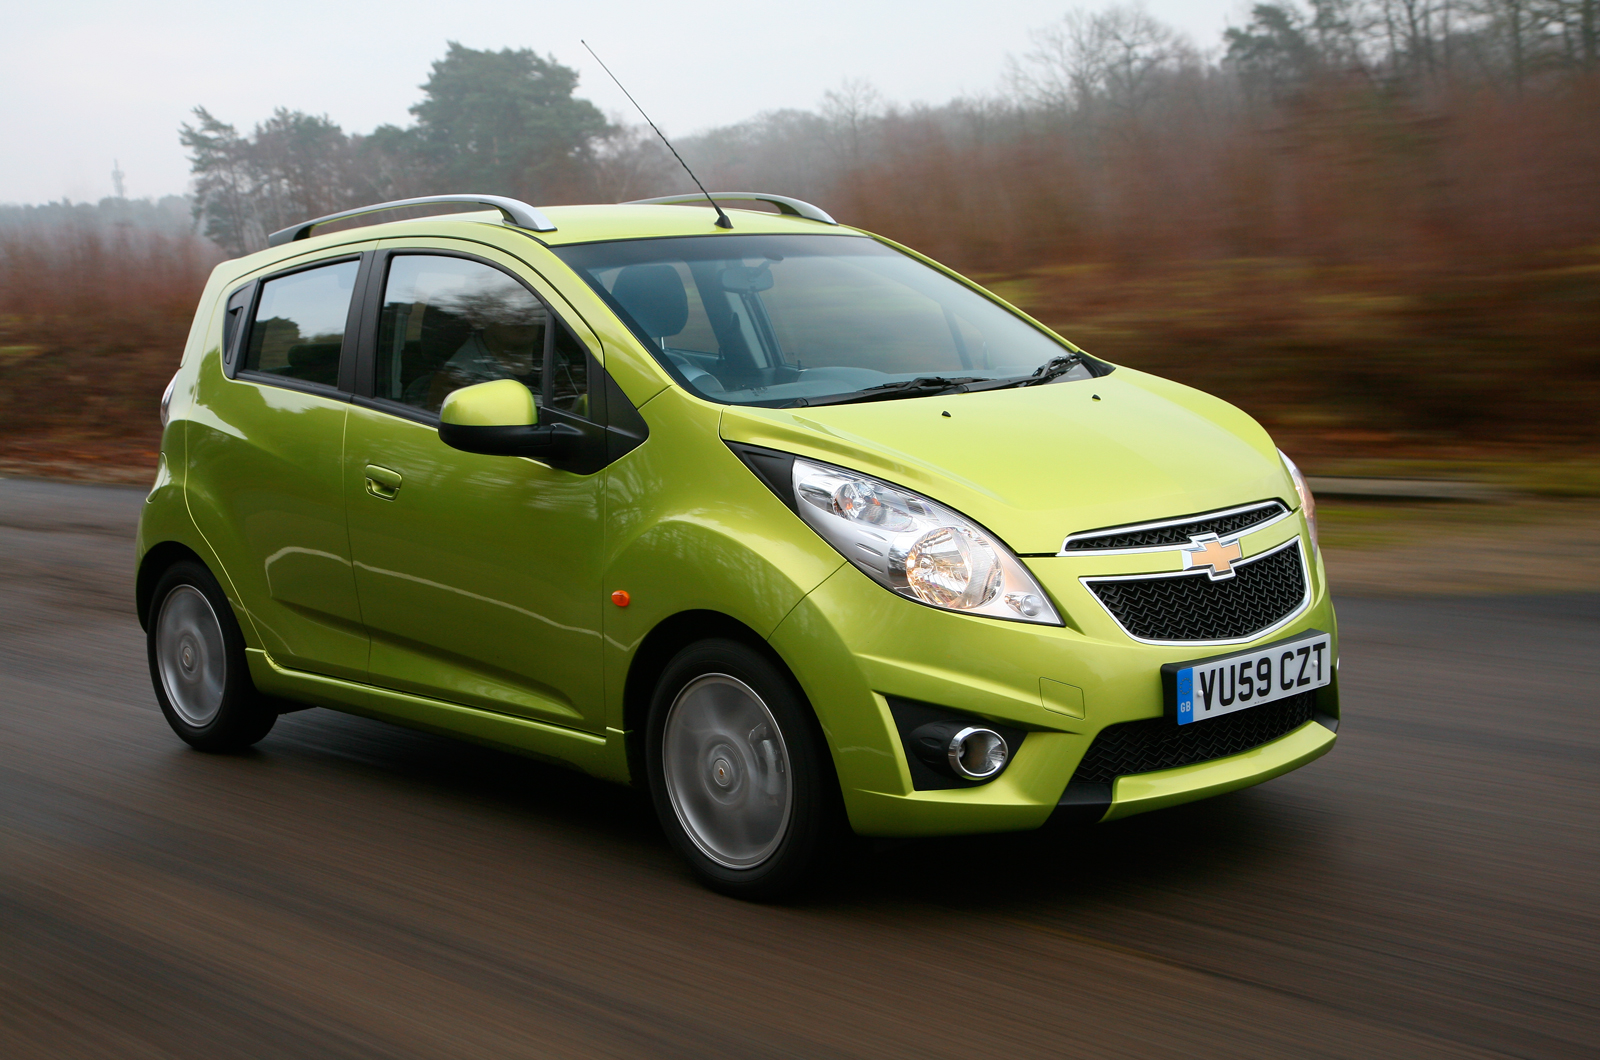 chevrolet-spark-the-spark-is-bigger-overall-than-the-matiz-it-replaced_74354